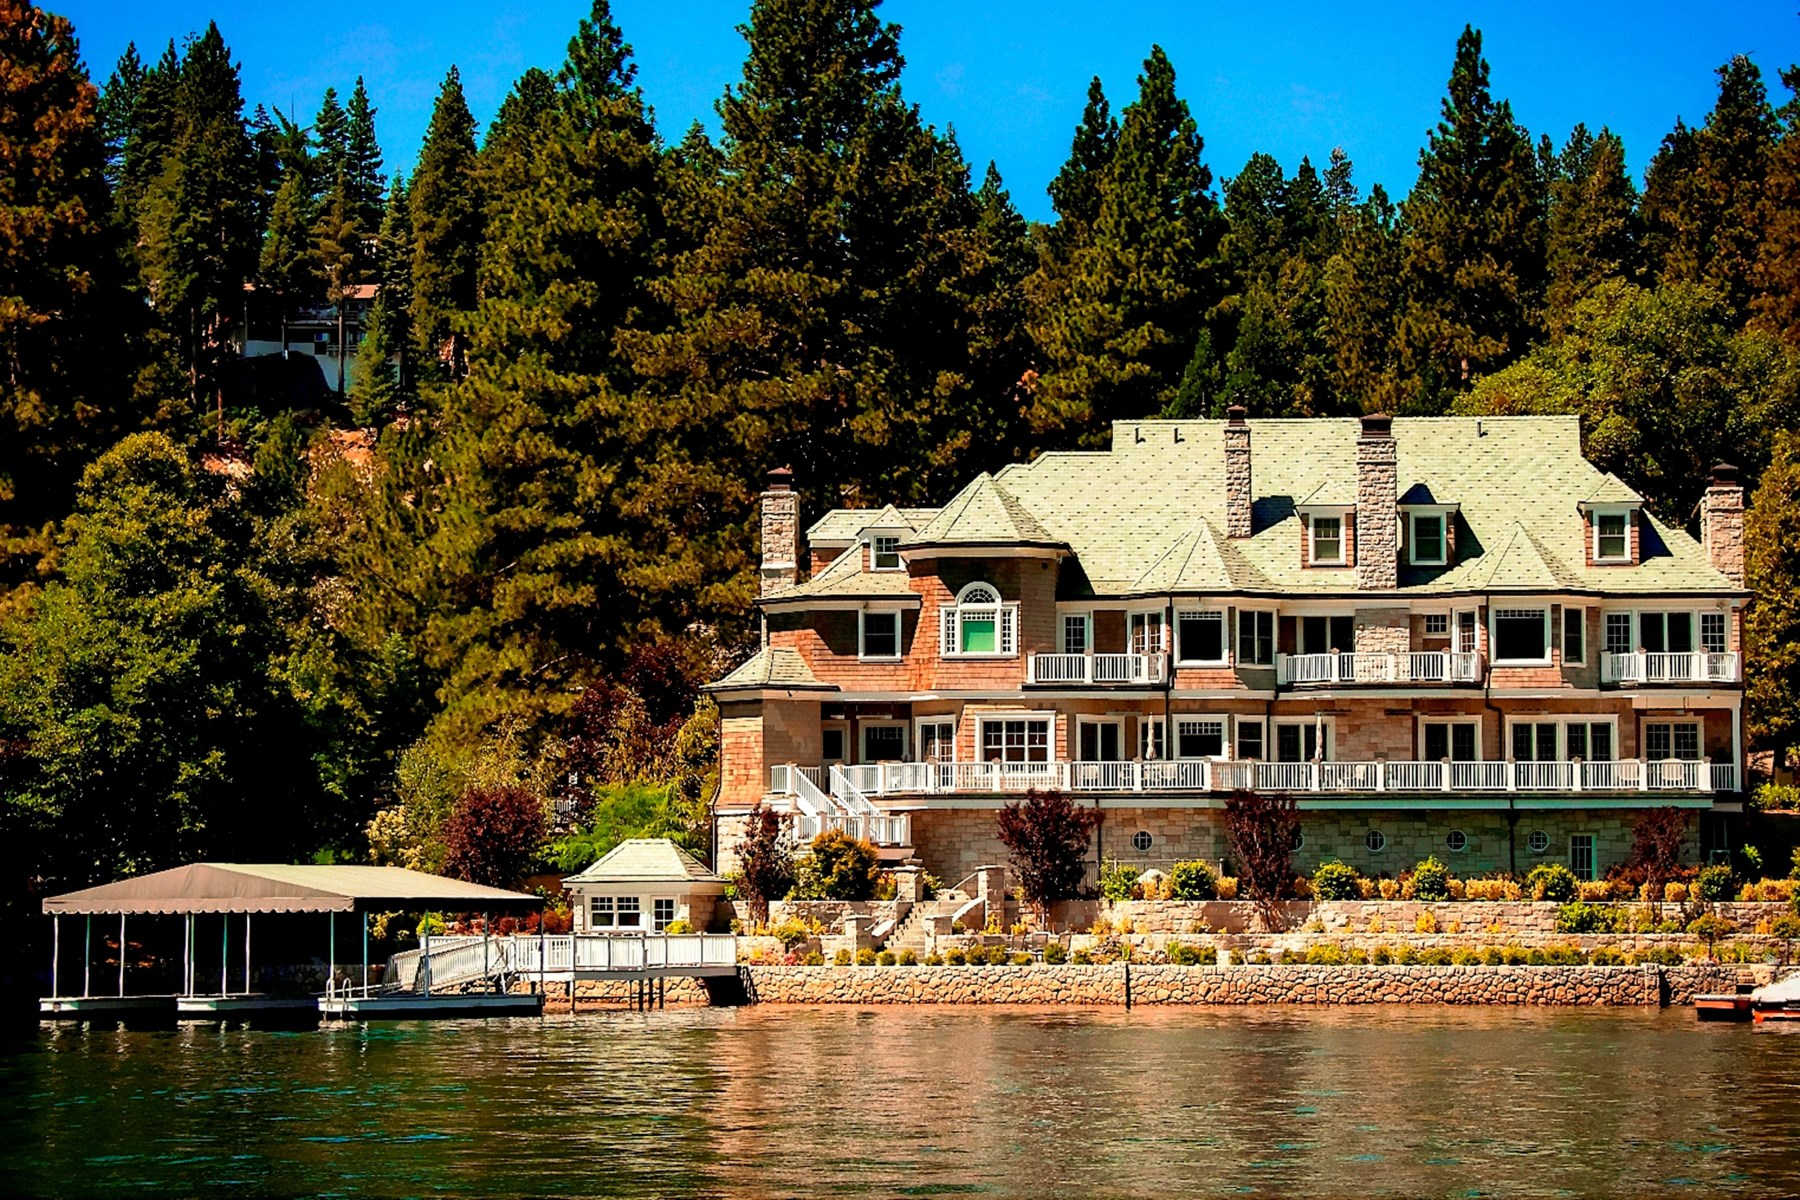 独户住宅 为 销售 在 Lake Arrowhead Trophy Estate 175 Shorewood Drive Lake Arrowhead, 92352 美国